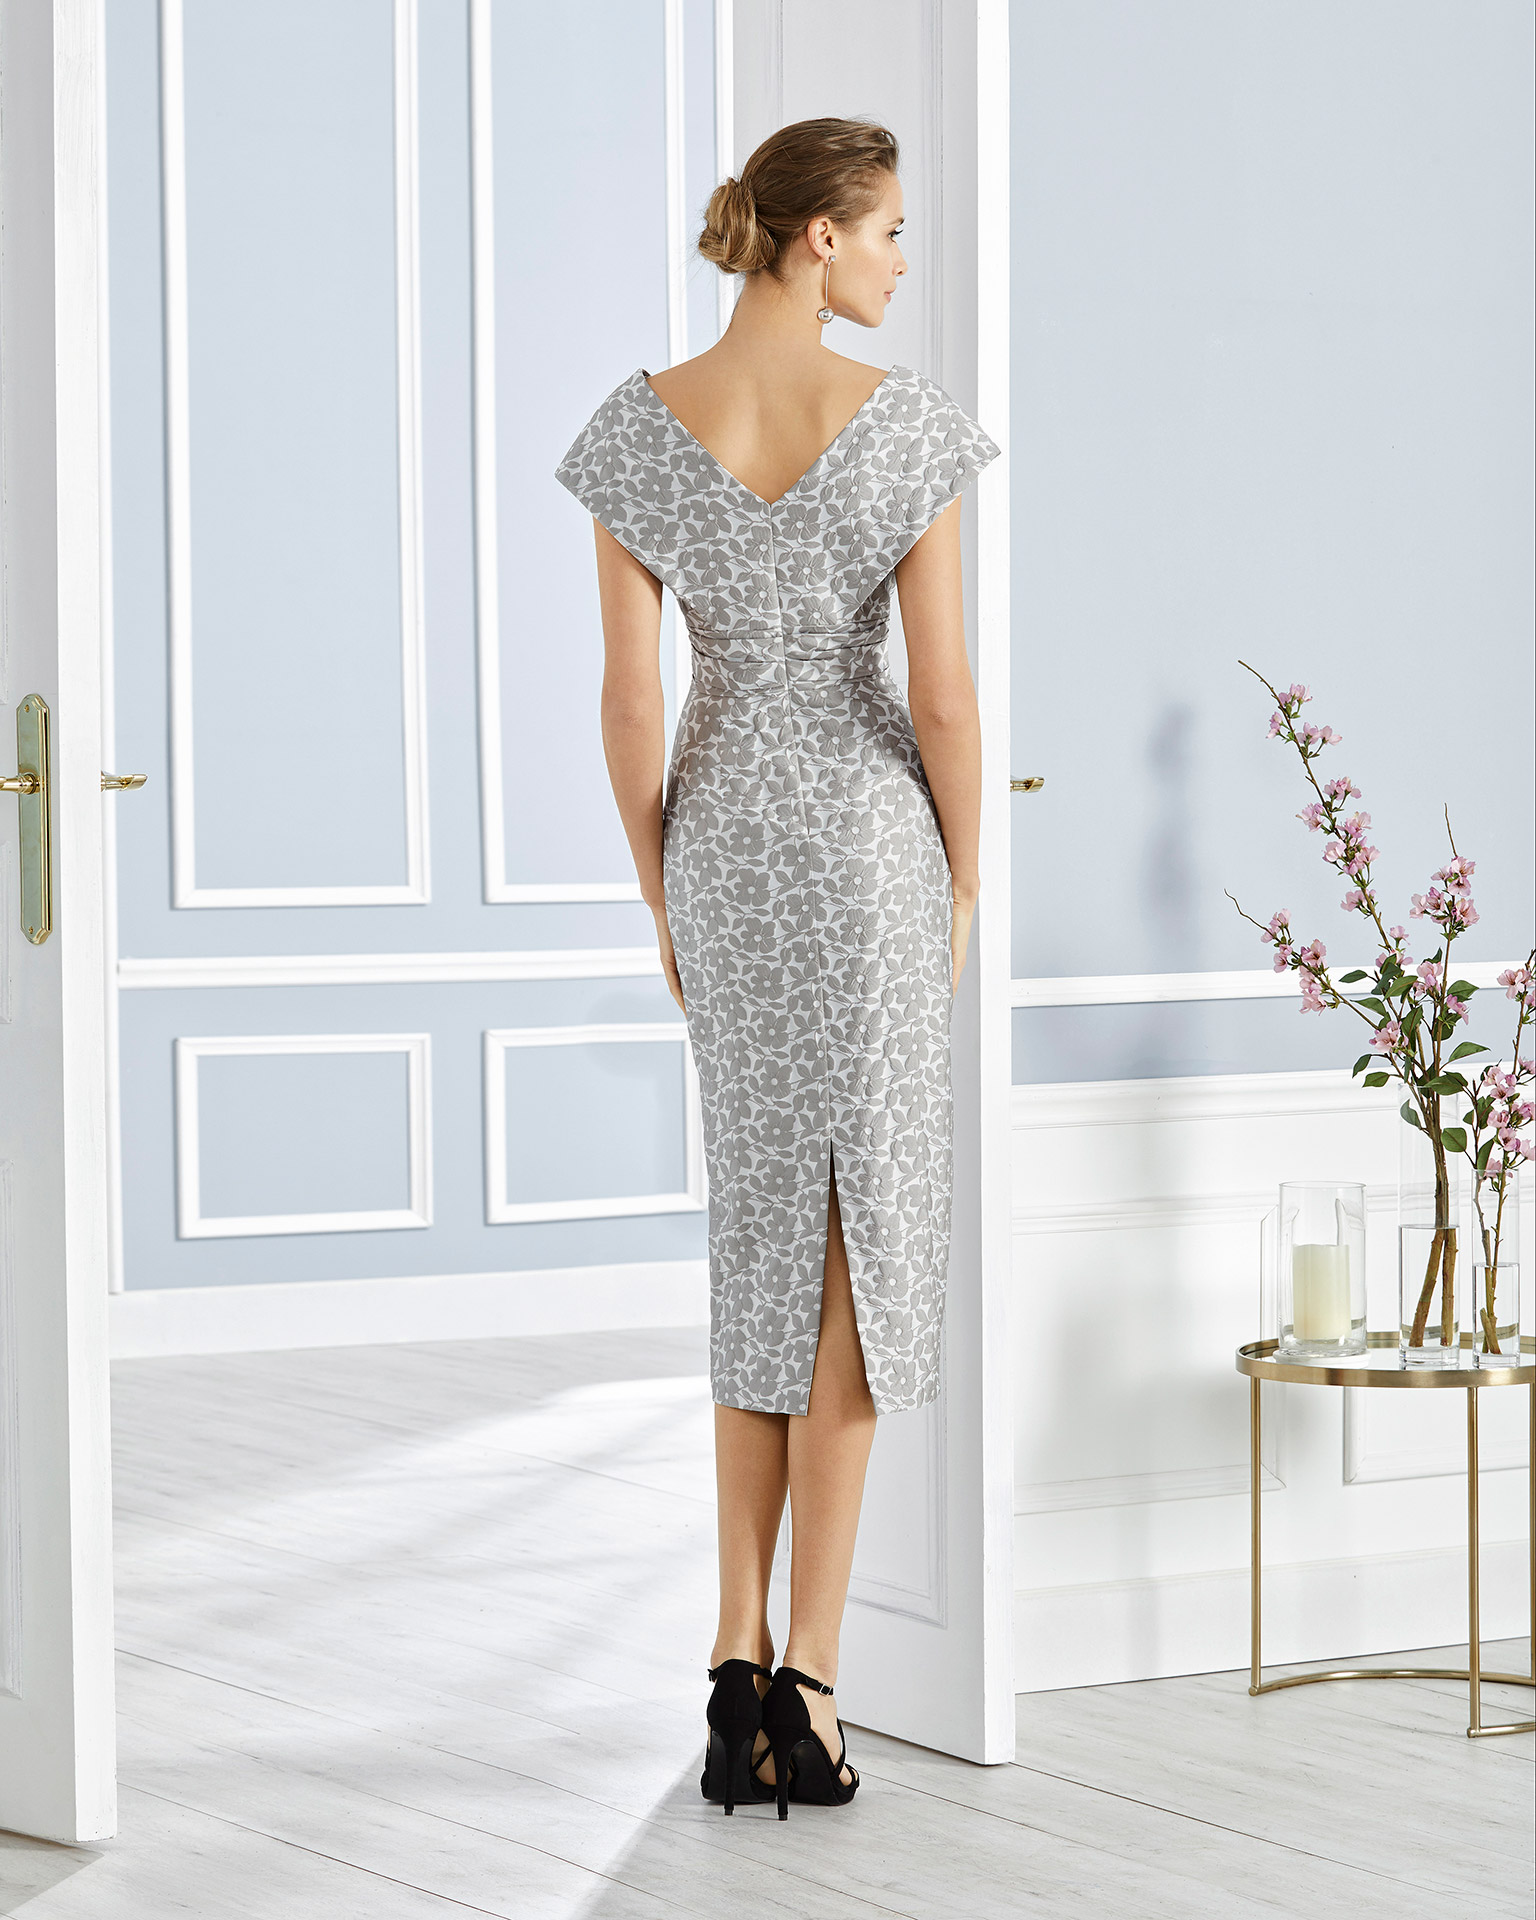 Short brocade cocktail dress. V-neckline and back with sash. With brocade jacket. 2020 COUTURE CLUB Collection.